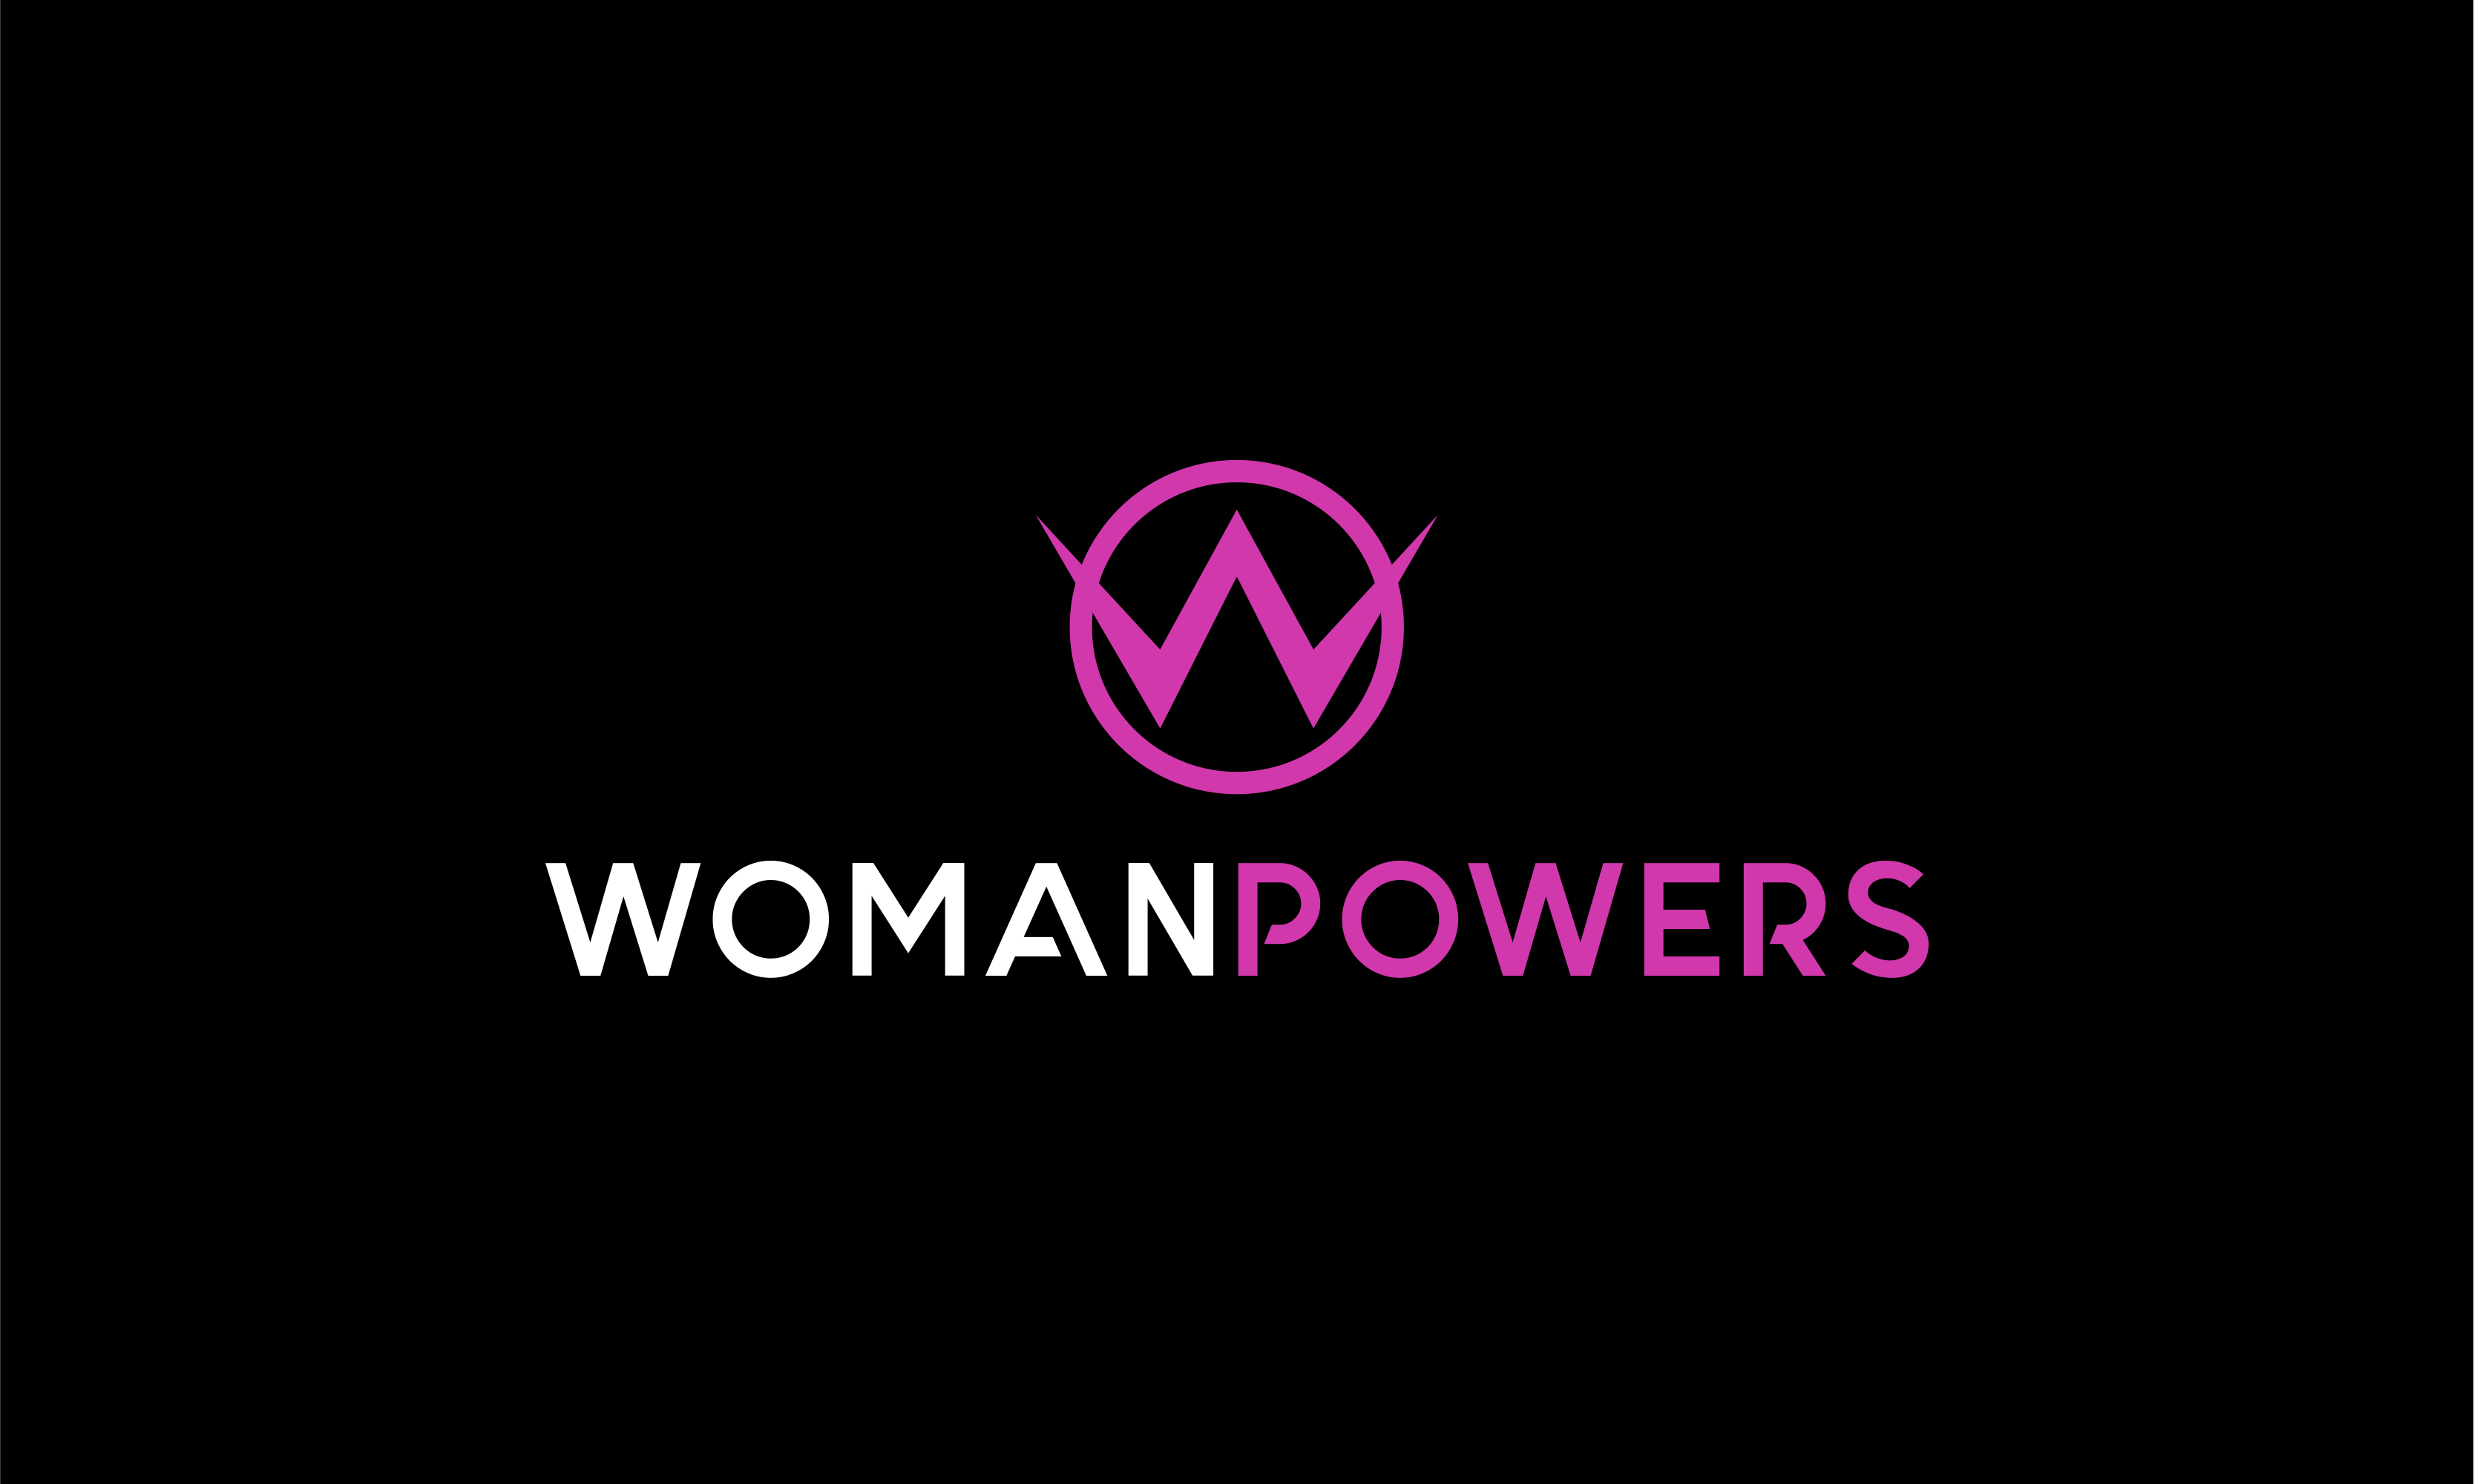 Womanpowers